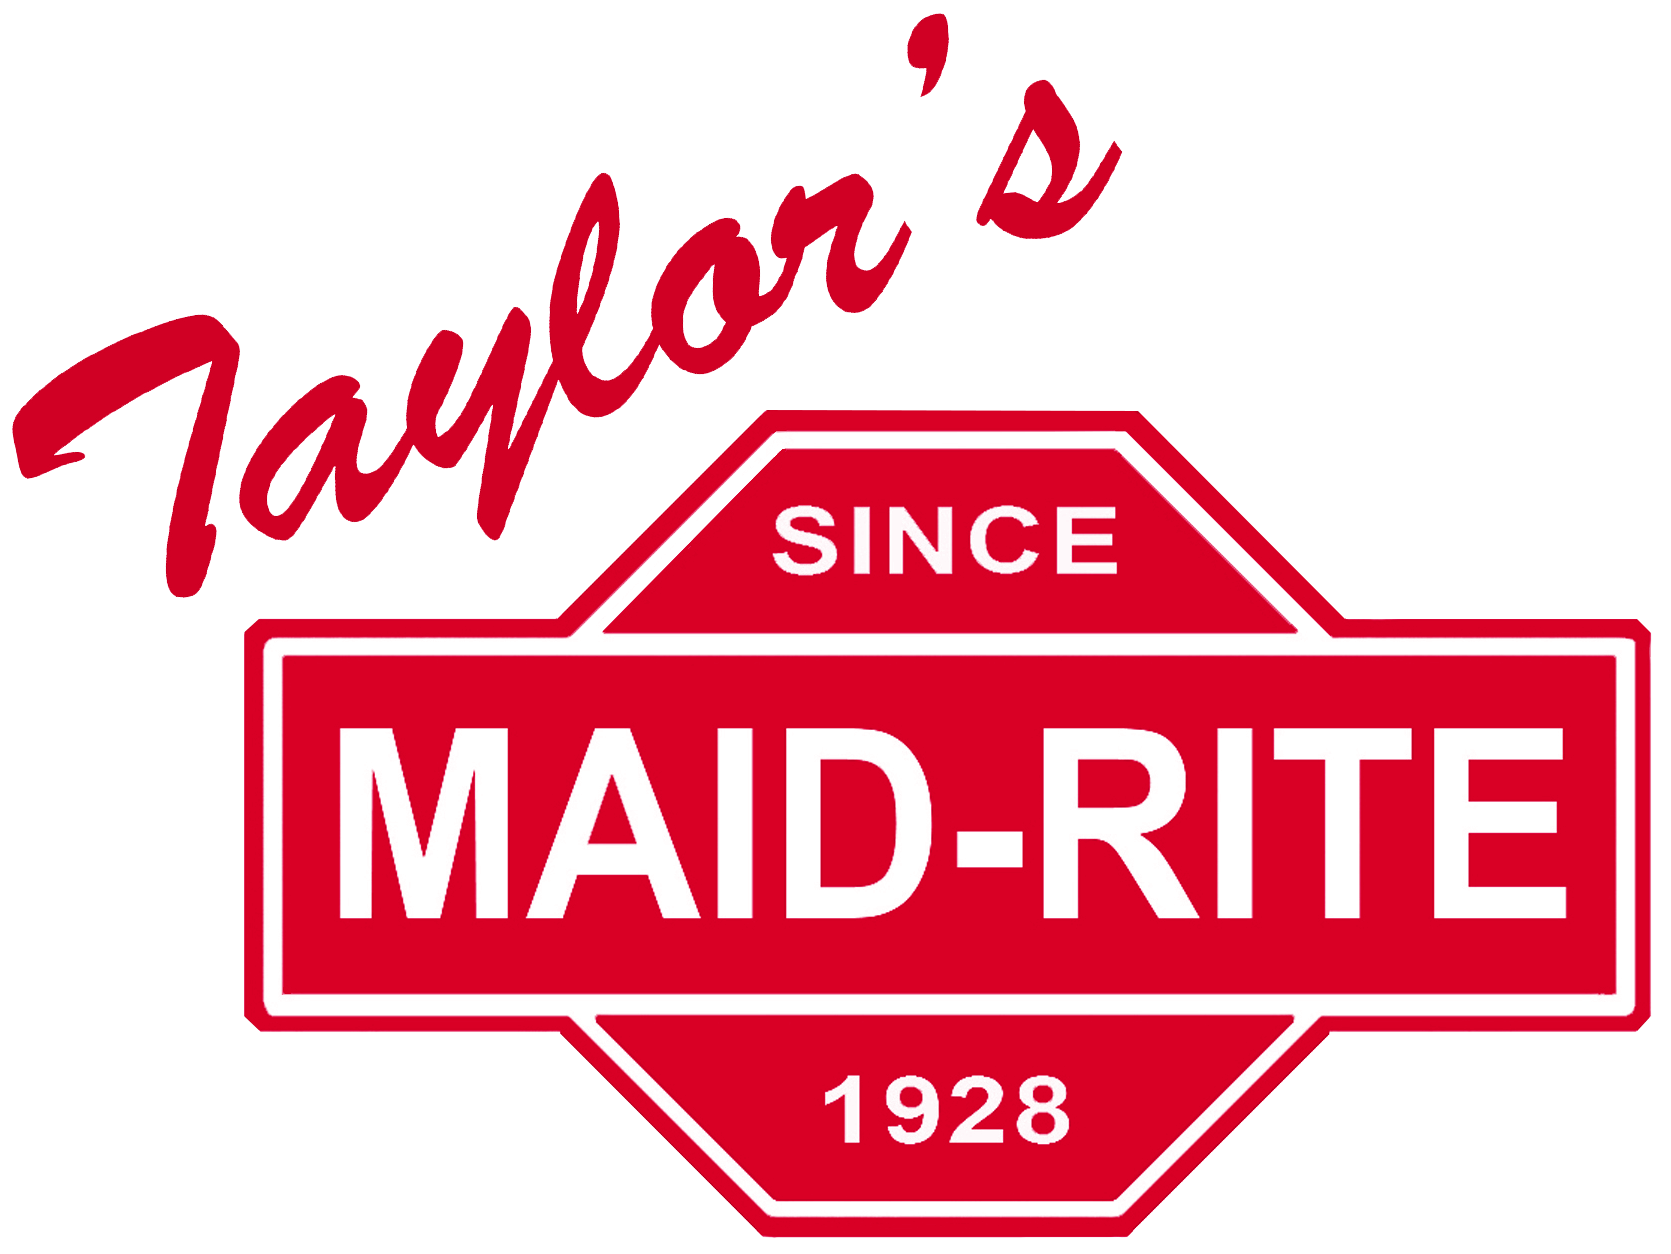 Taylor's Maid-Rite